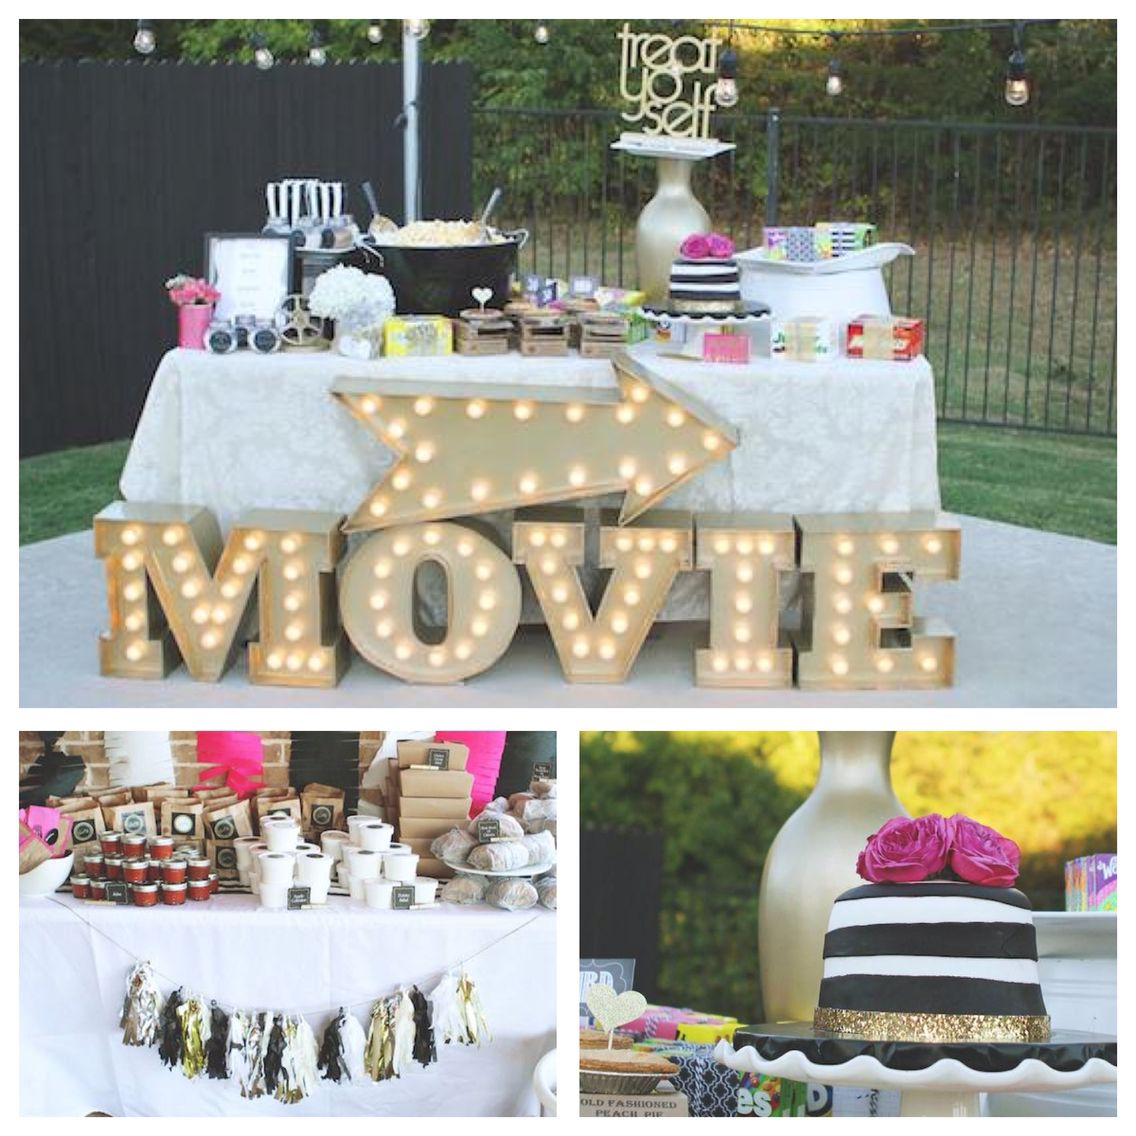 Ideas For Backyard Parties: Outdoor Movie Night Thirtieth Birthday Party